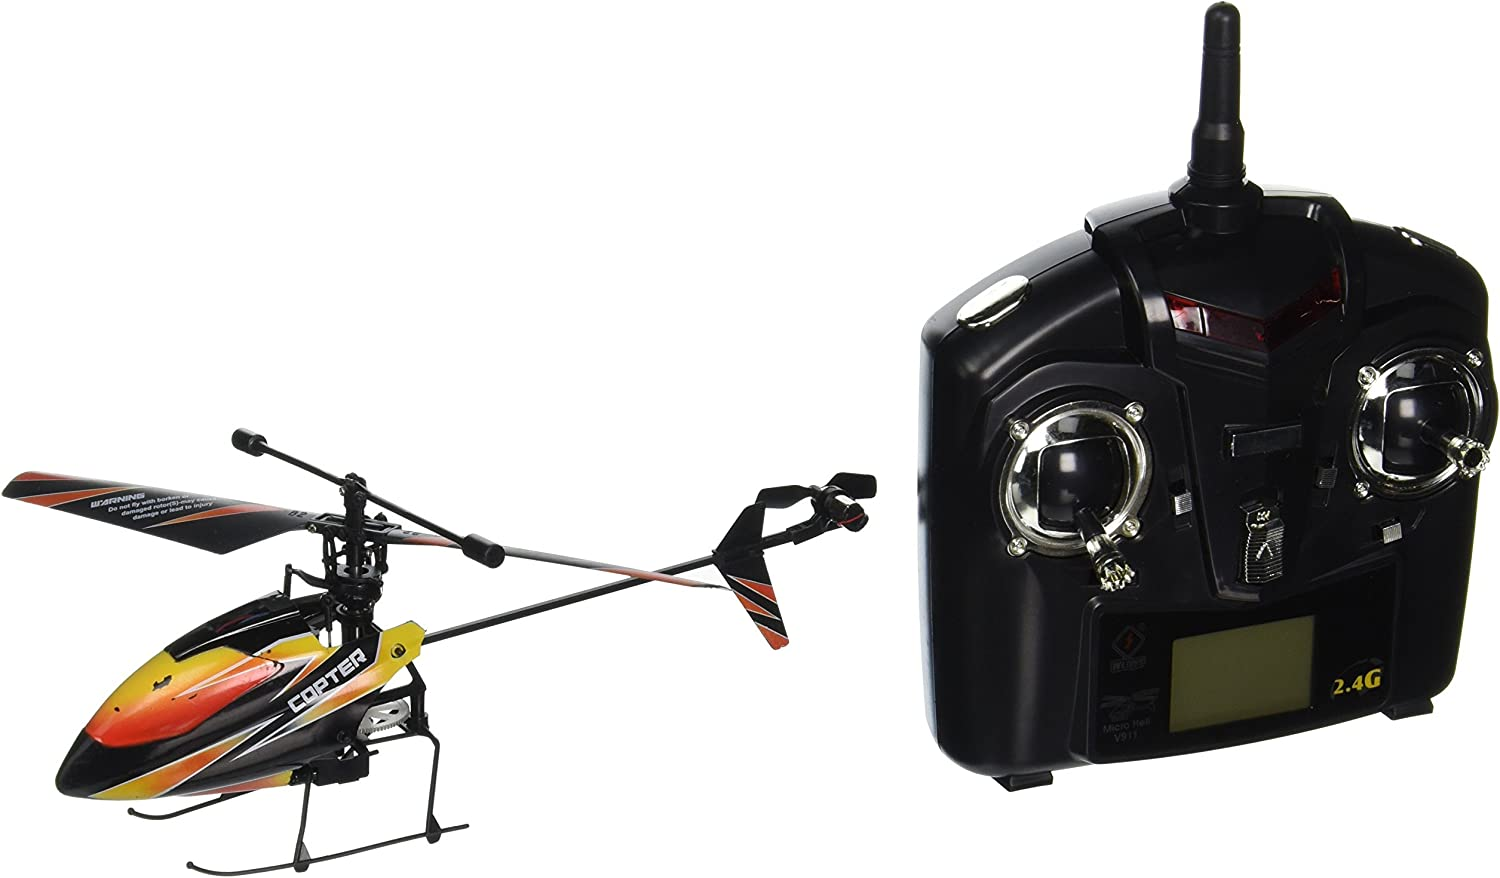 New WL V911 4 CH Single Rotor Helicopter Version 2 New & Improved schwarz by WE-R-KIDS